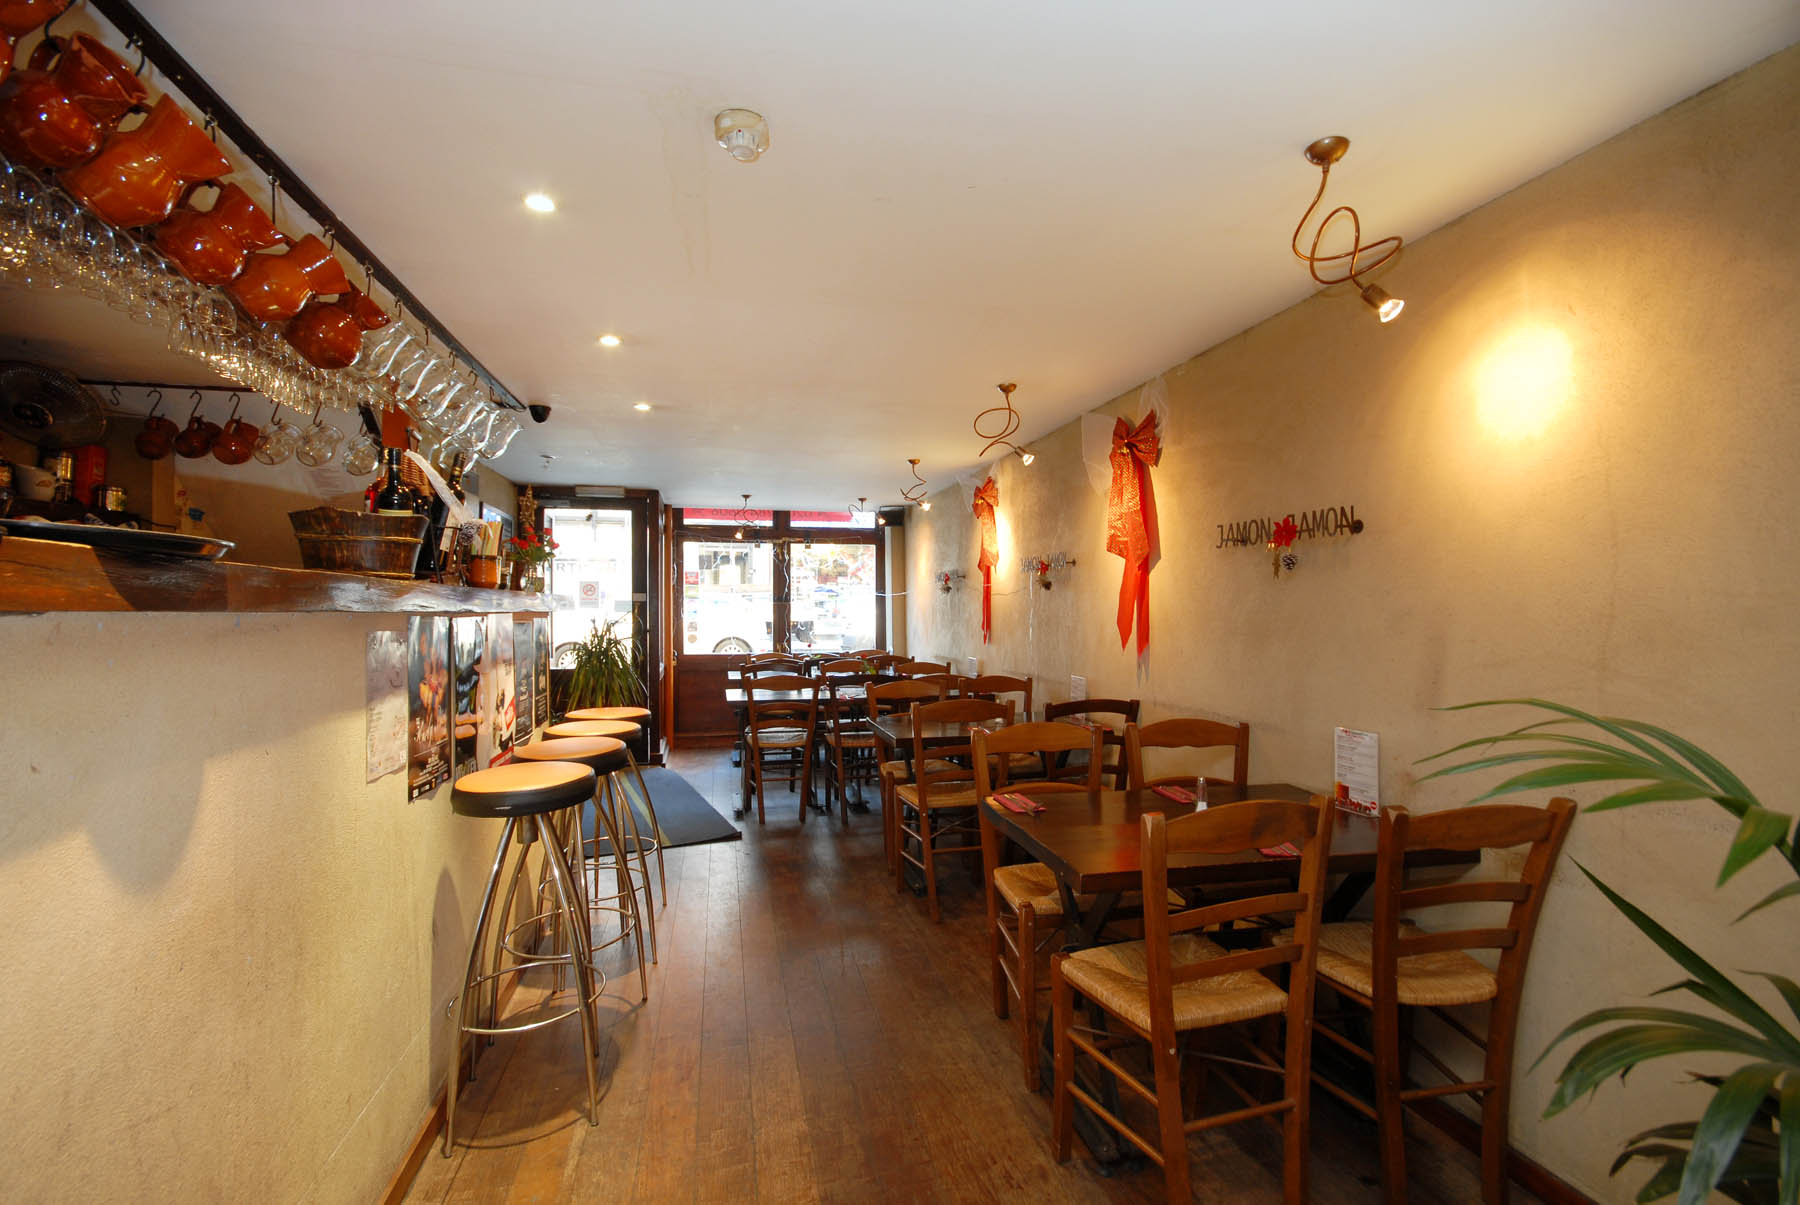 Reserve a table at Jamon Jamon - Camden